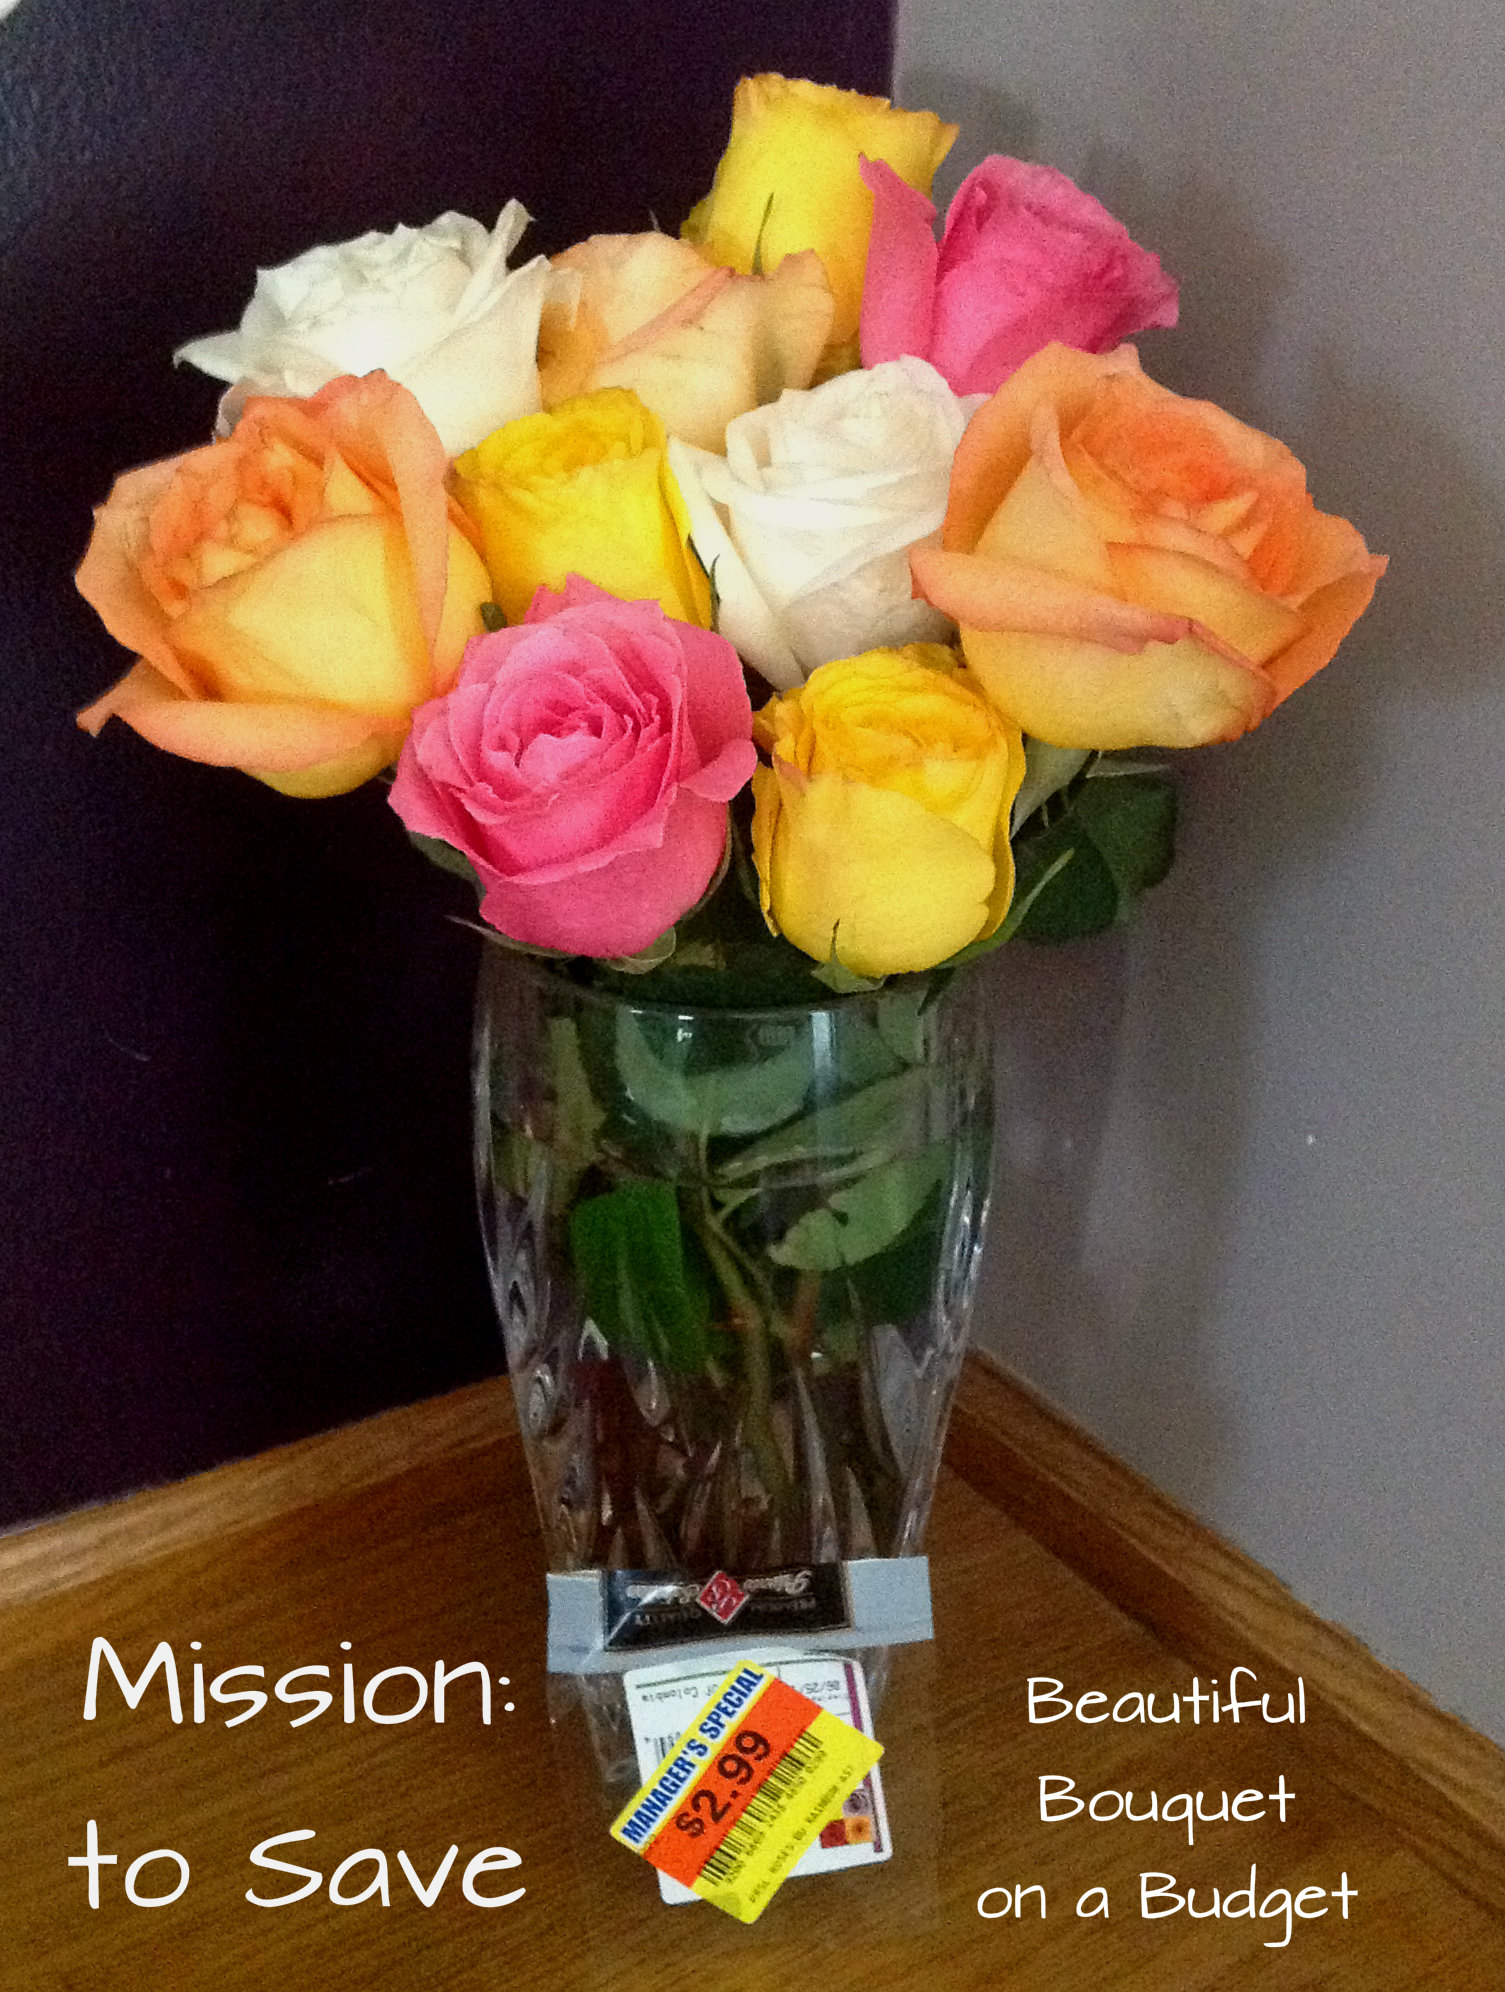 Check out my tip for finding beautiful bouquets on a budget.  Yes you can have roses on a couponer's budget!